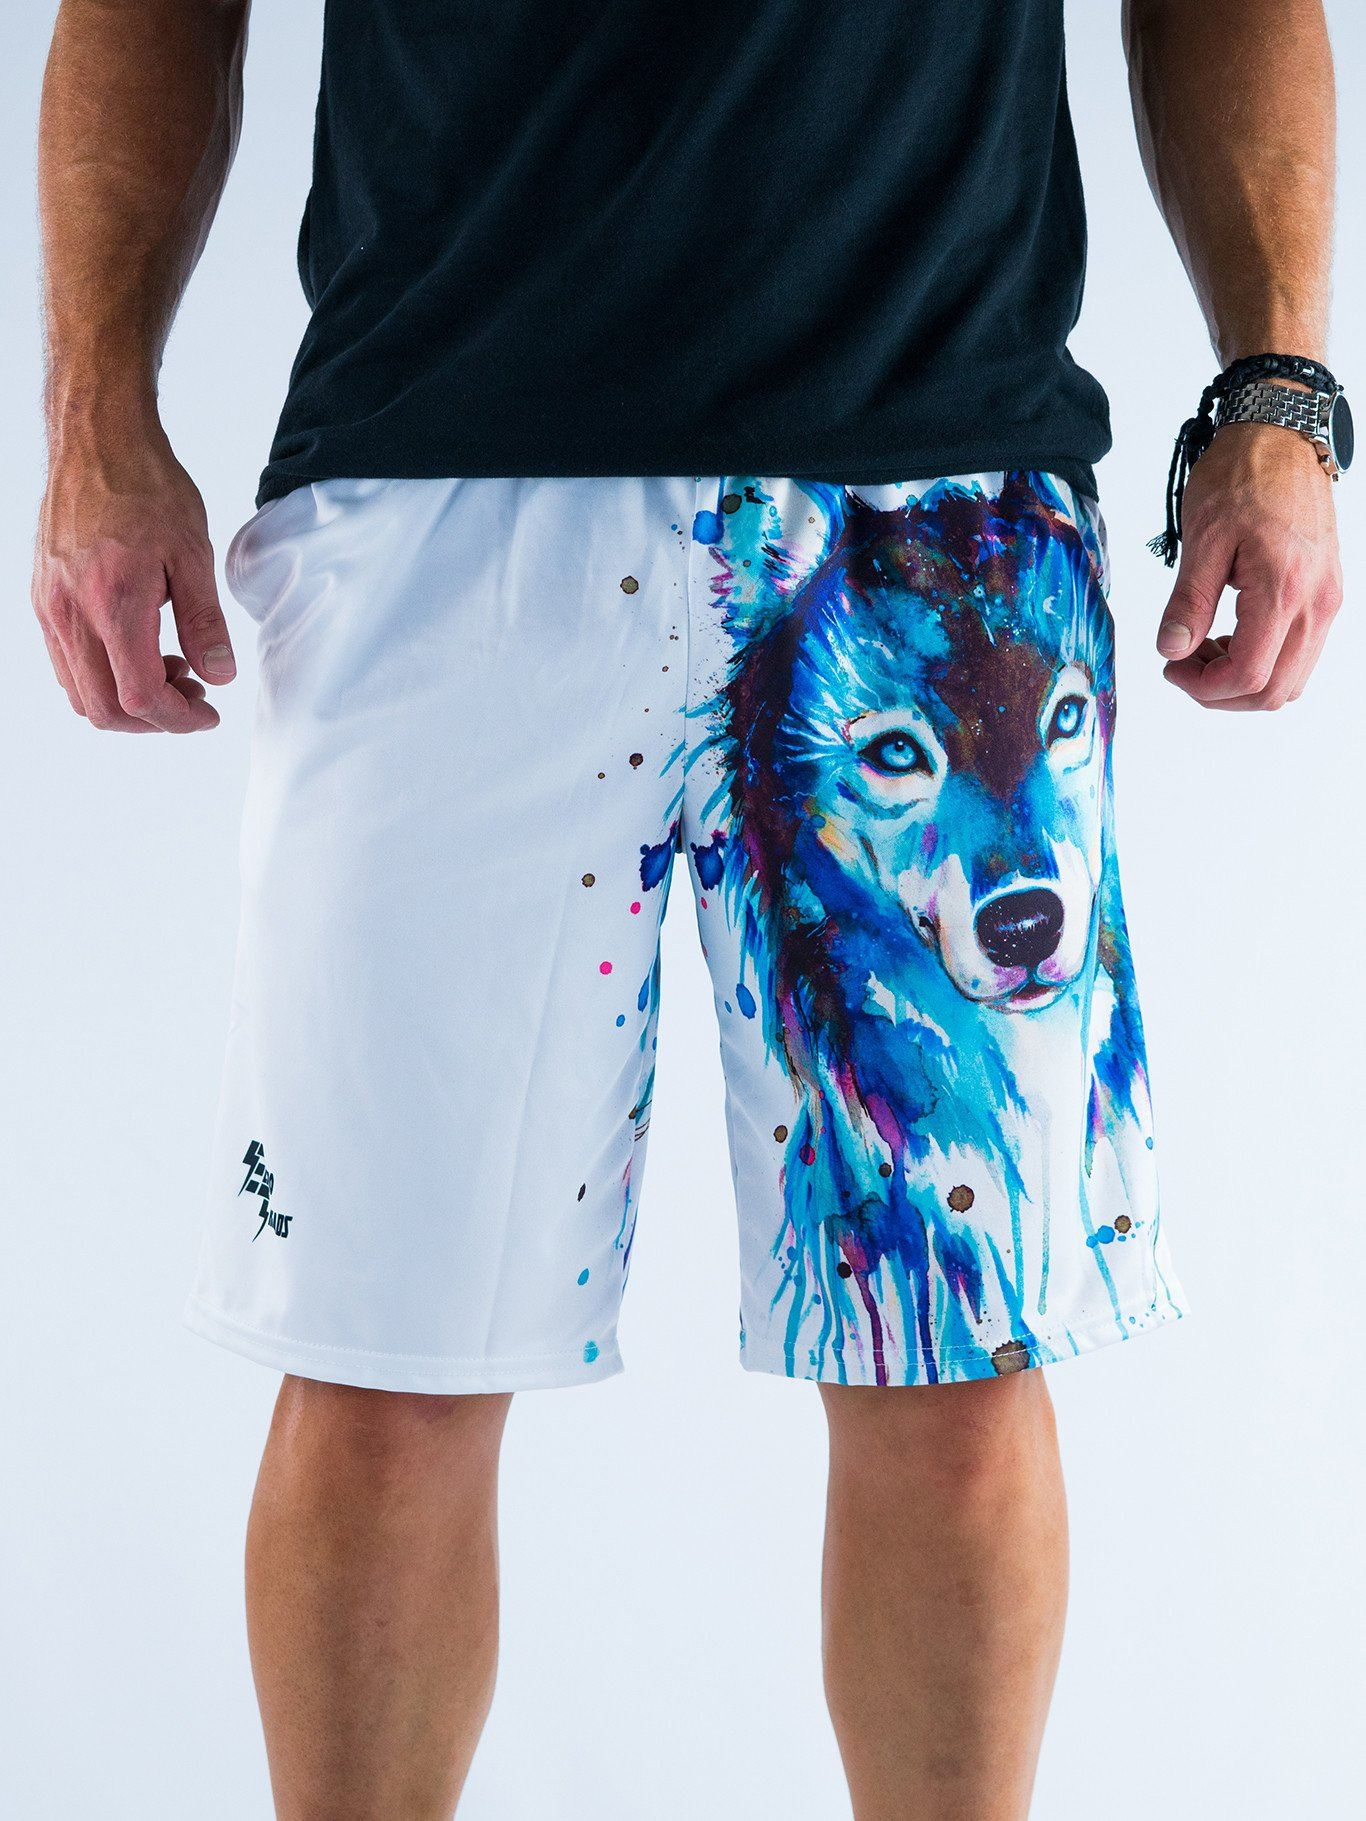 Dark Wolf Shorts Mens Shorts T6 28 - XS White